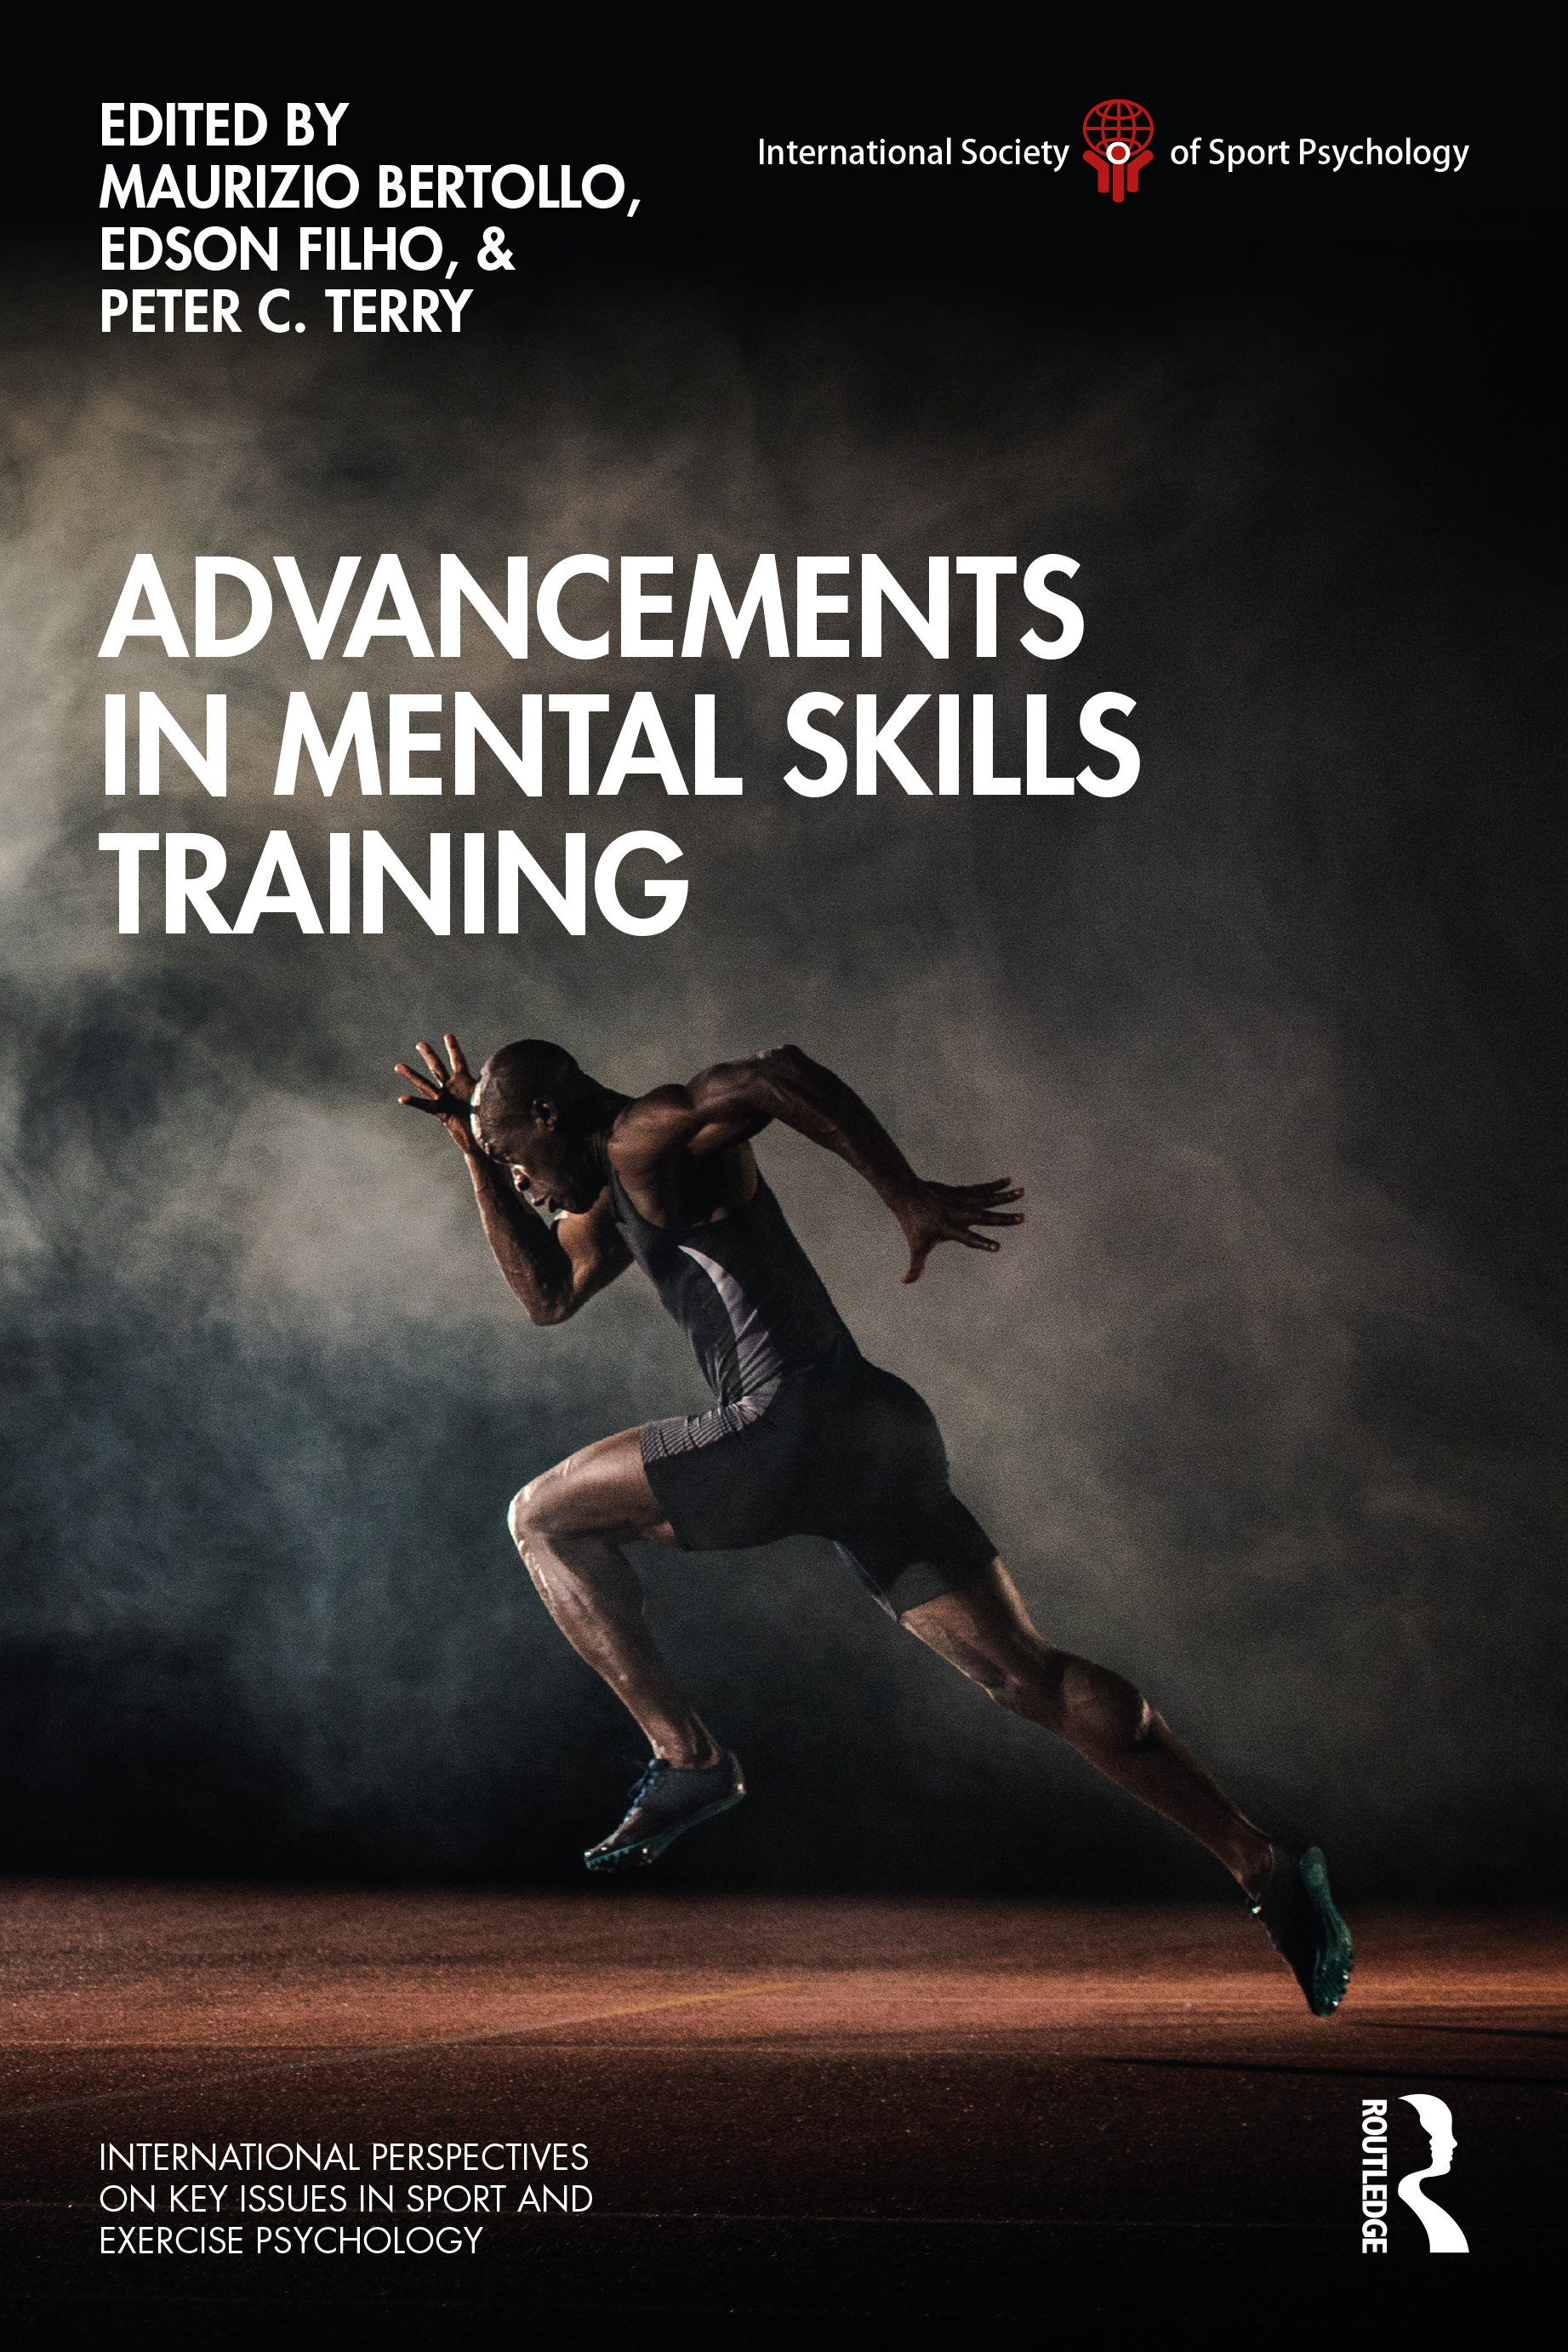 Advancements in Mental Skills Training book cover